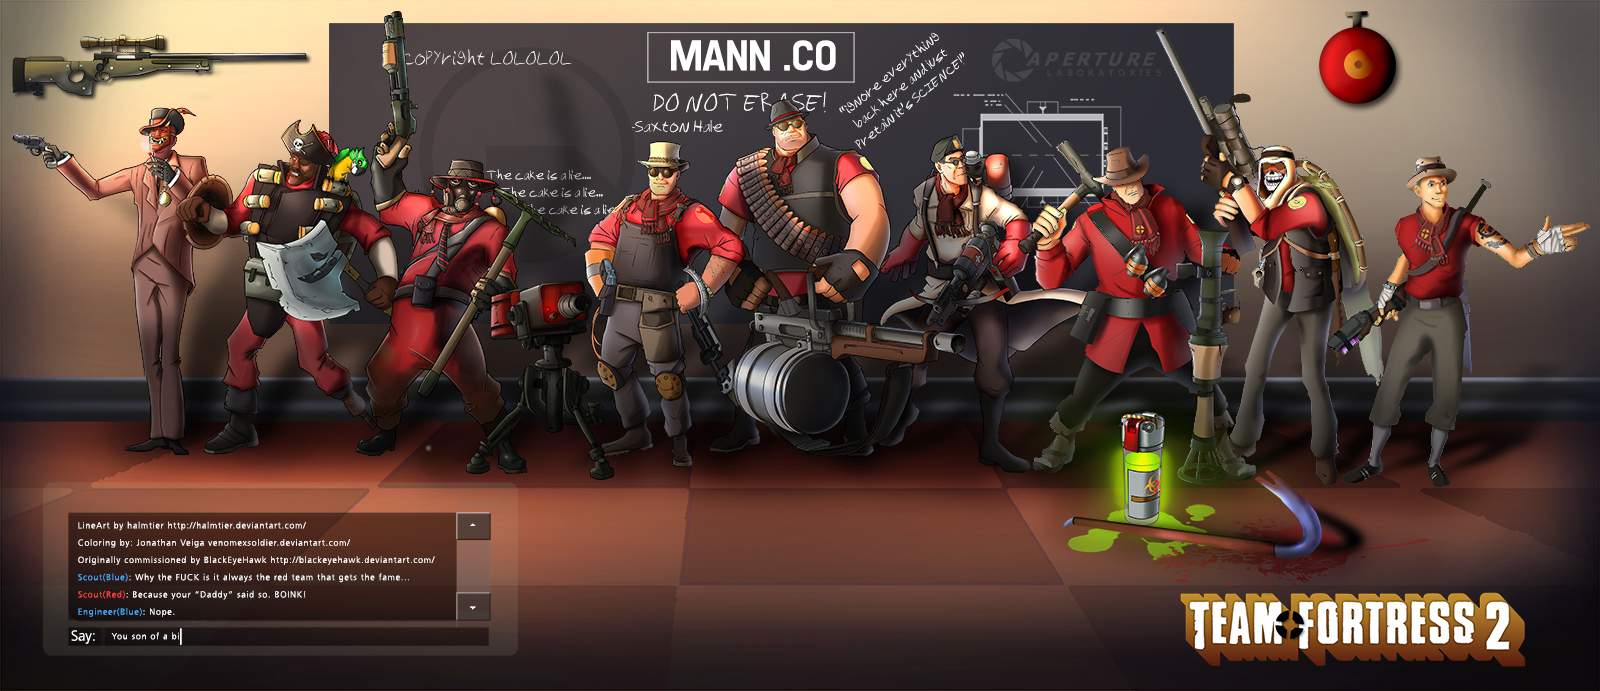 TeamFortress2 Coloring Contest